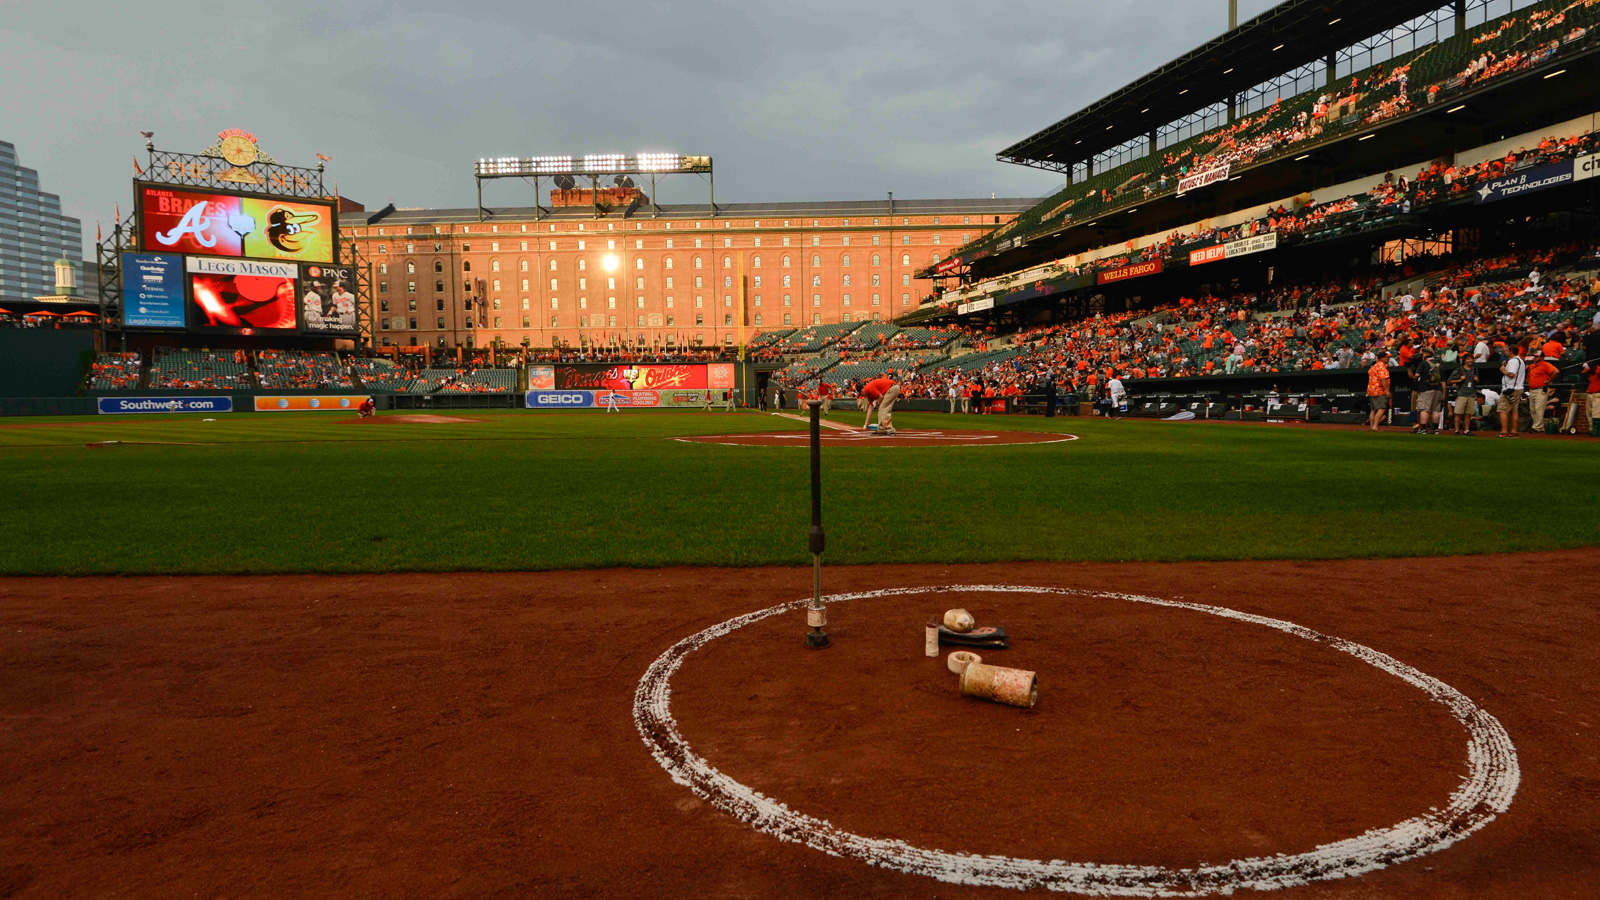 'Rebooting' Tigers open series in Baltimore